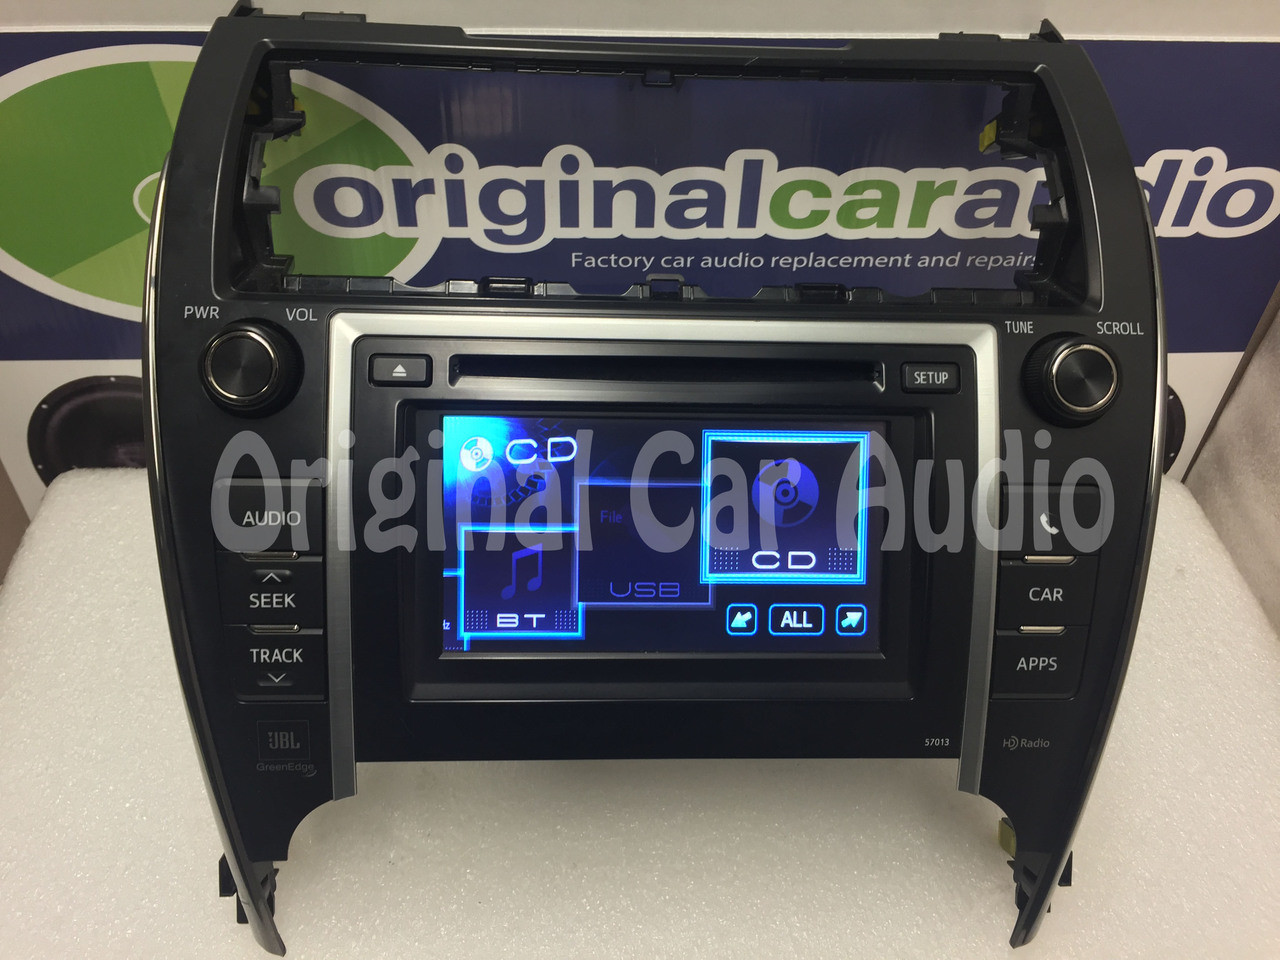 12 13 Toyota CAMRY Touch Screen Display LCD Radio MP3 XM CD Changer Player  57013